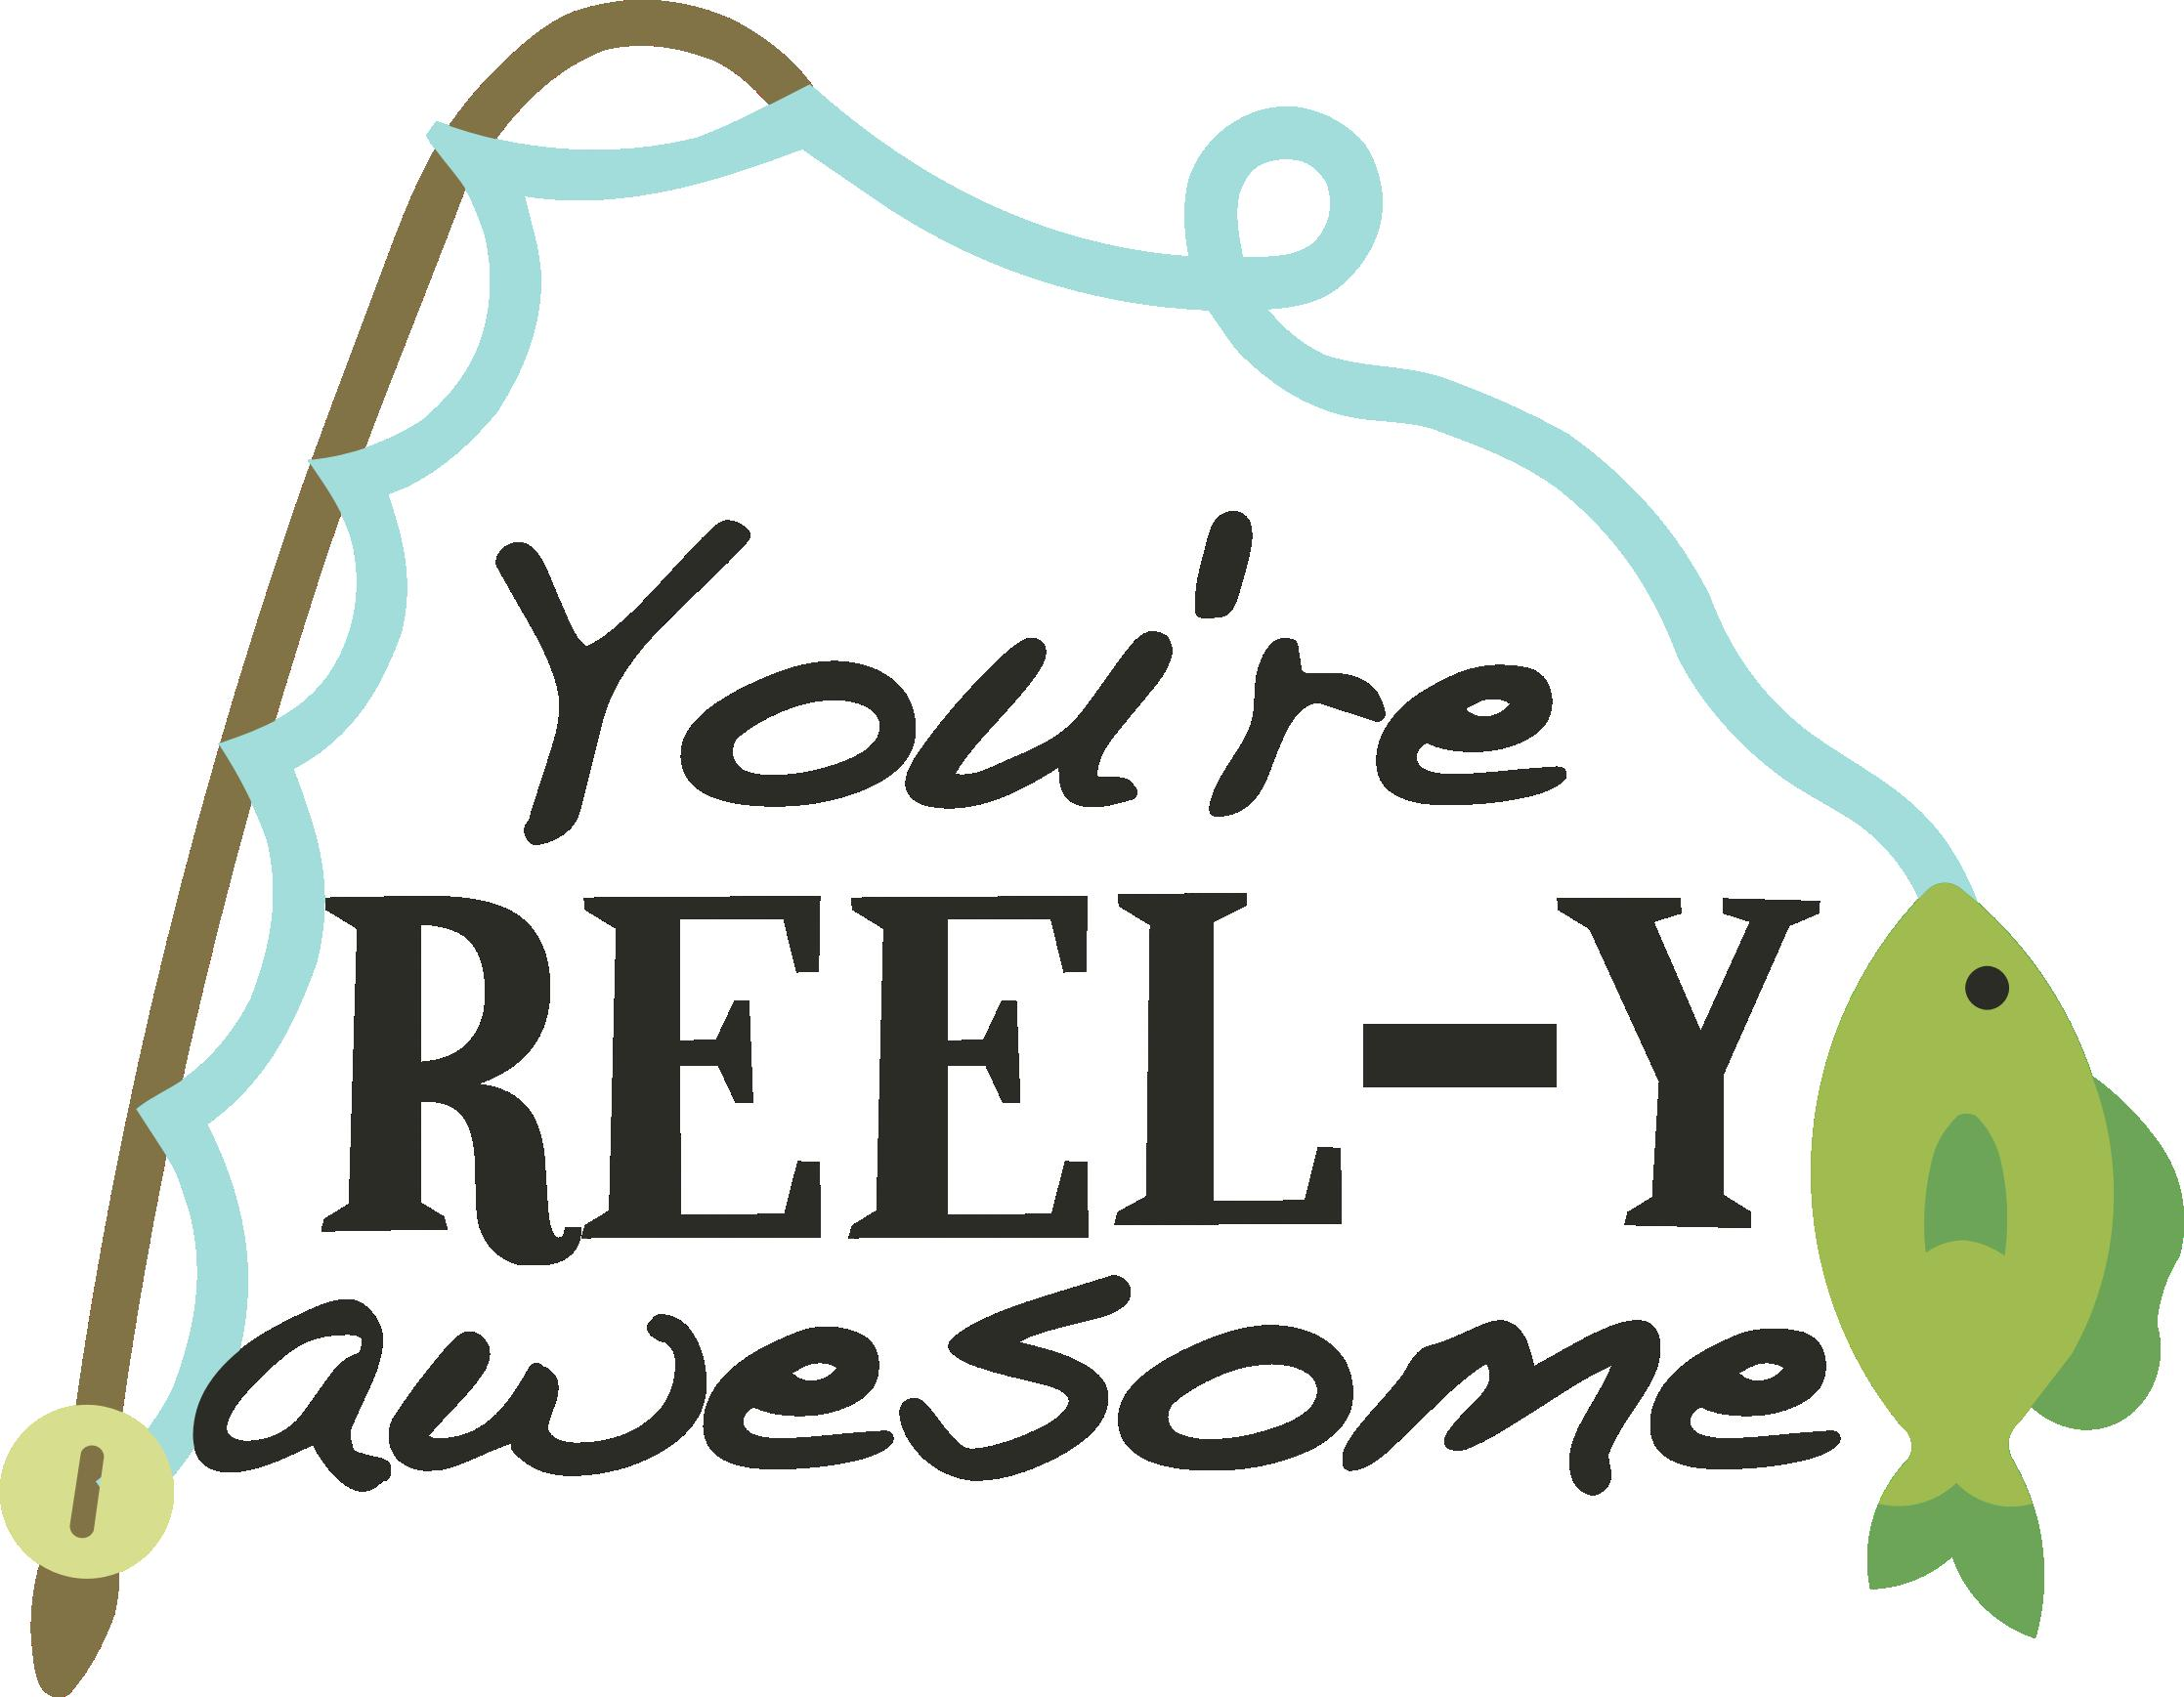 You're REEL-Y awesome